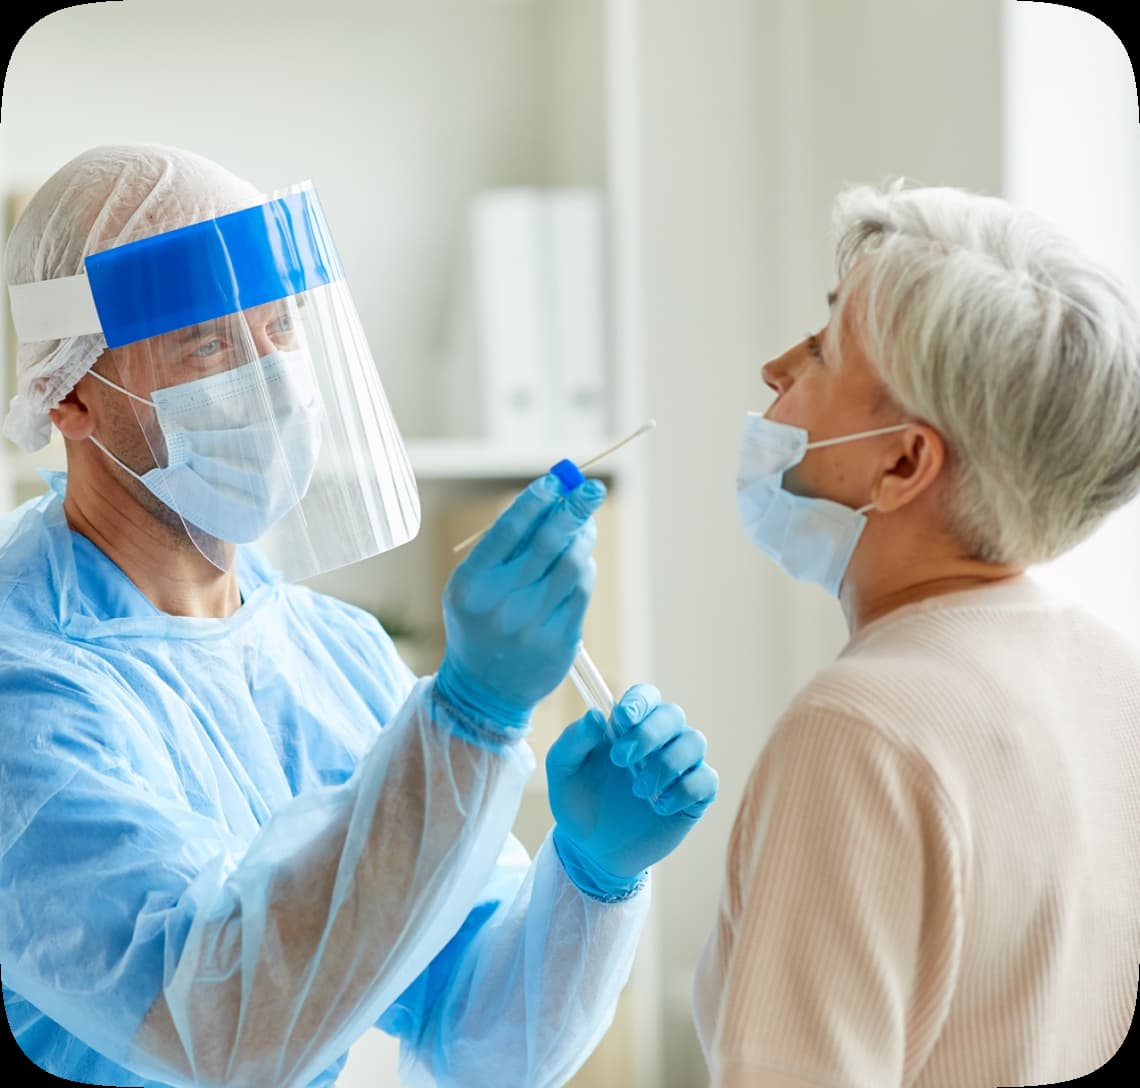 Elderly woman receives a covid-19 test from a man in a hazmat suit